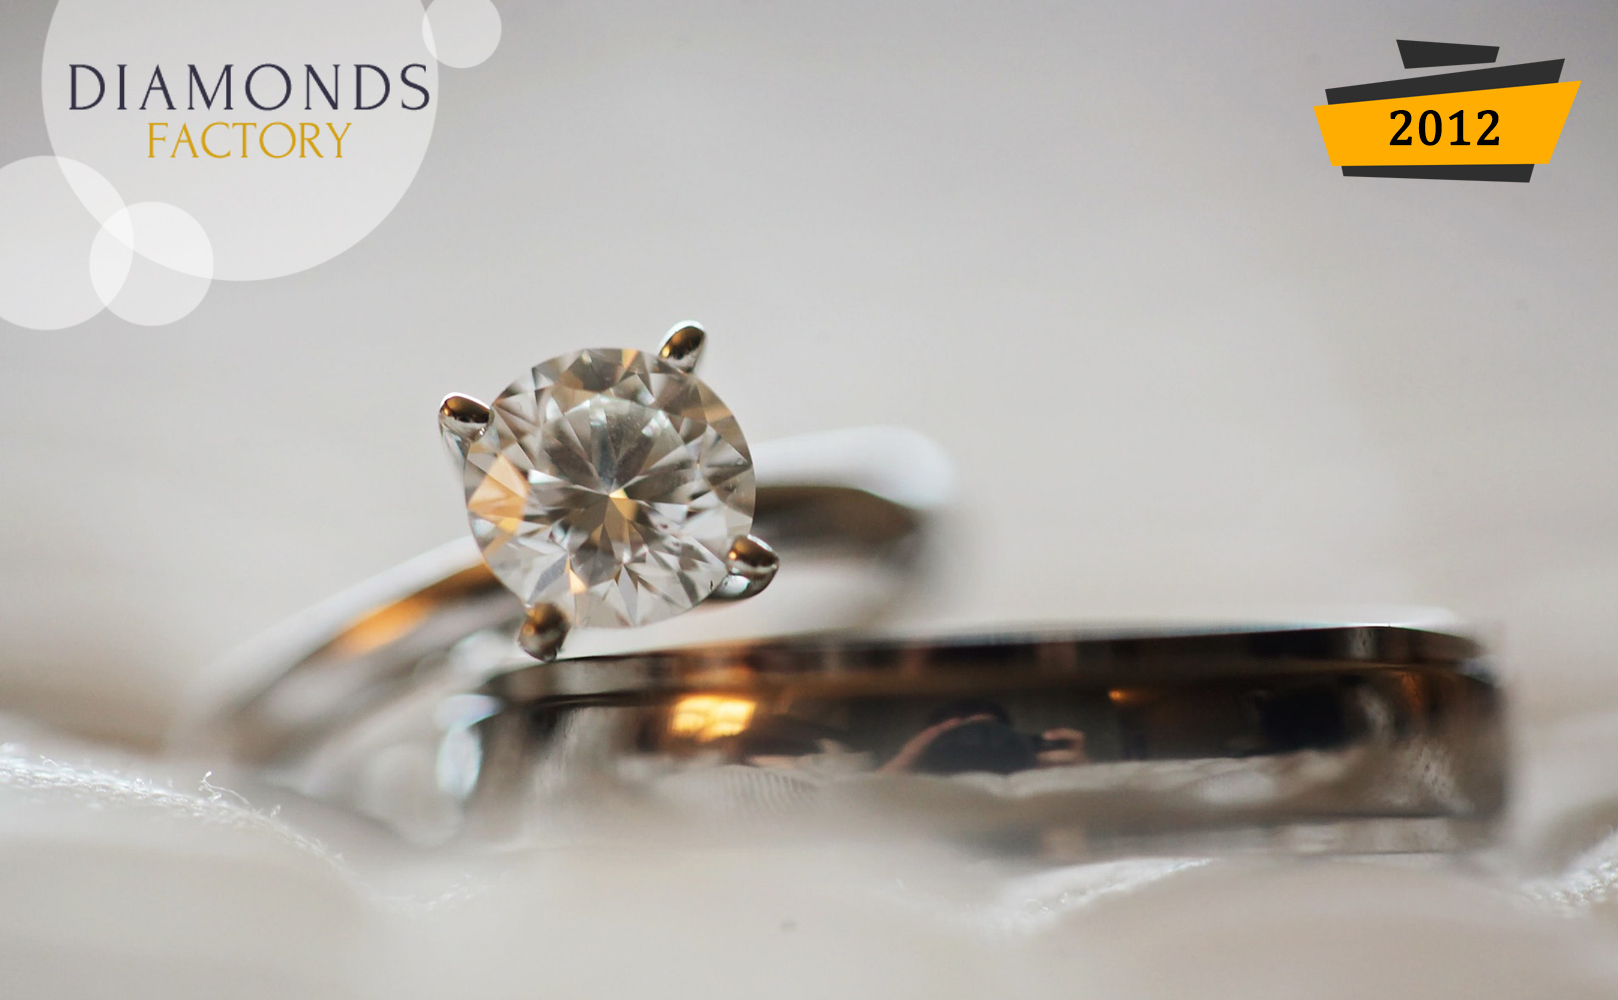 Online Sales Growth of Diamonds Factory